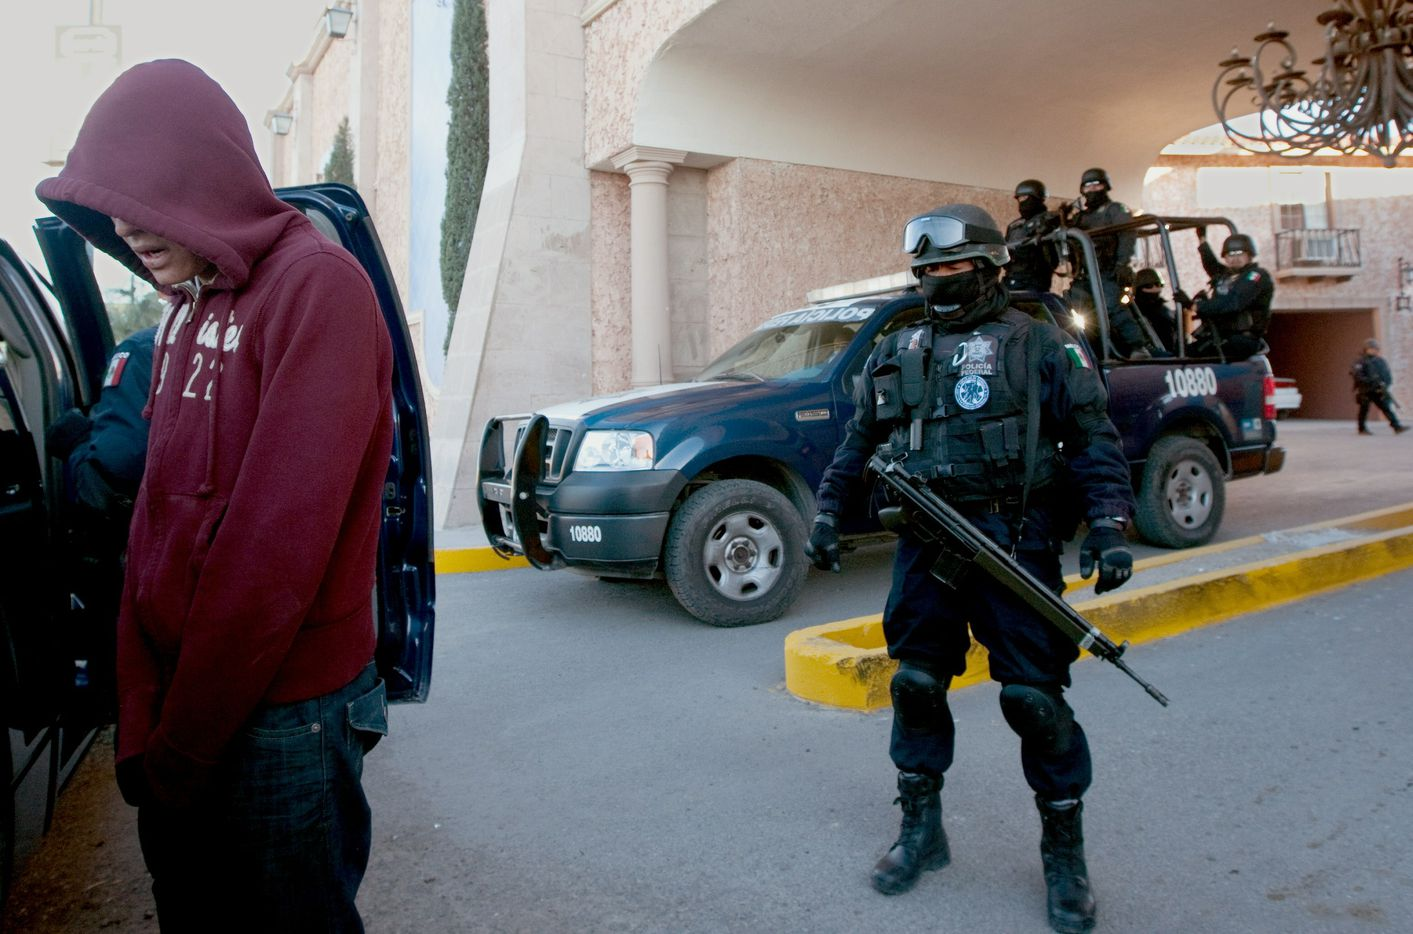 Federal Police check a suspect of an attack against Federal Police in Ciudad Juarez, Mexico, on February 10, 2011.